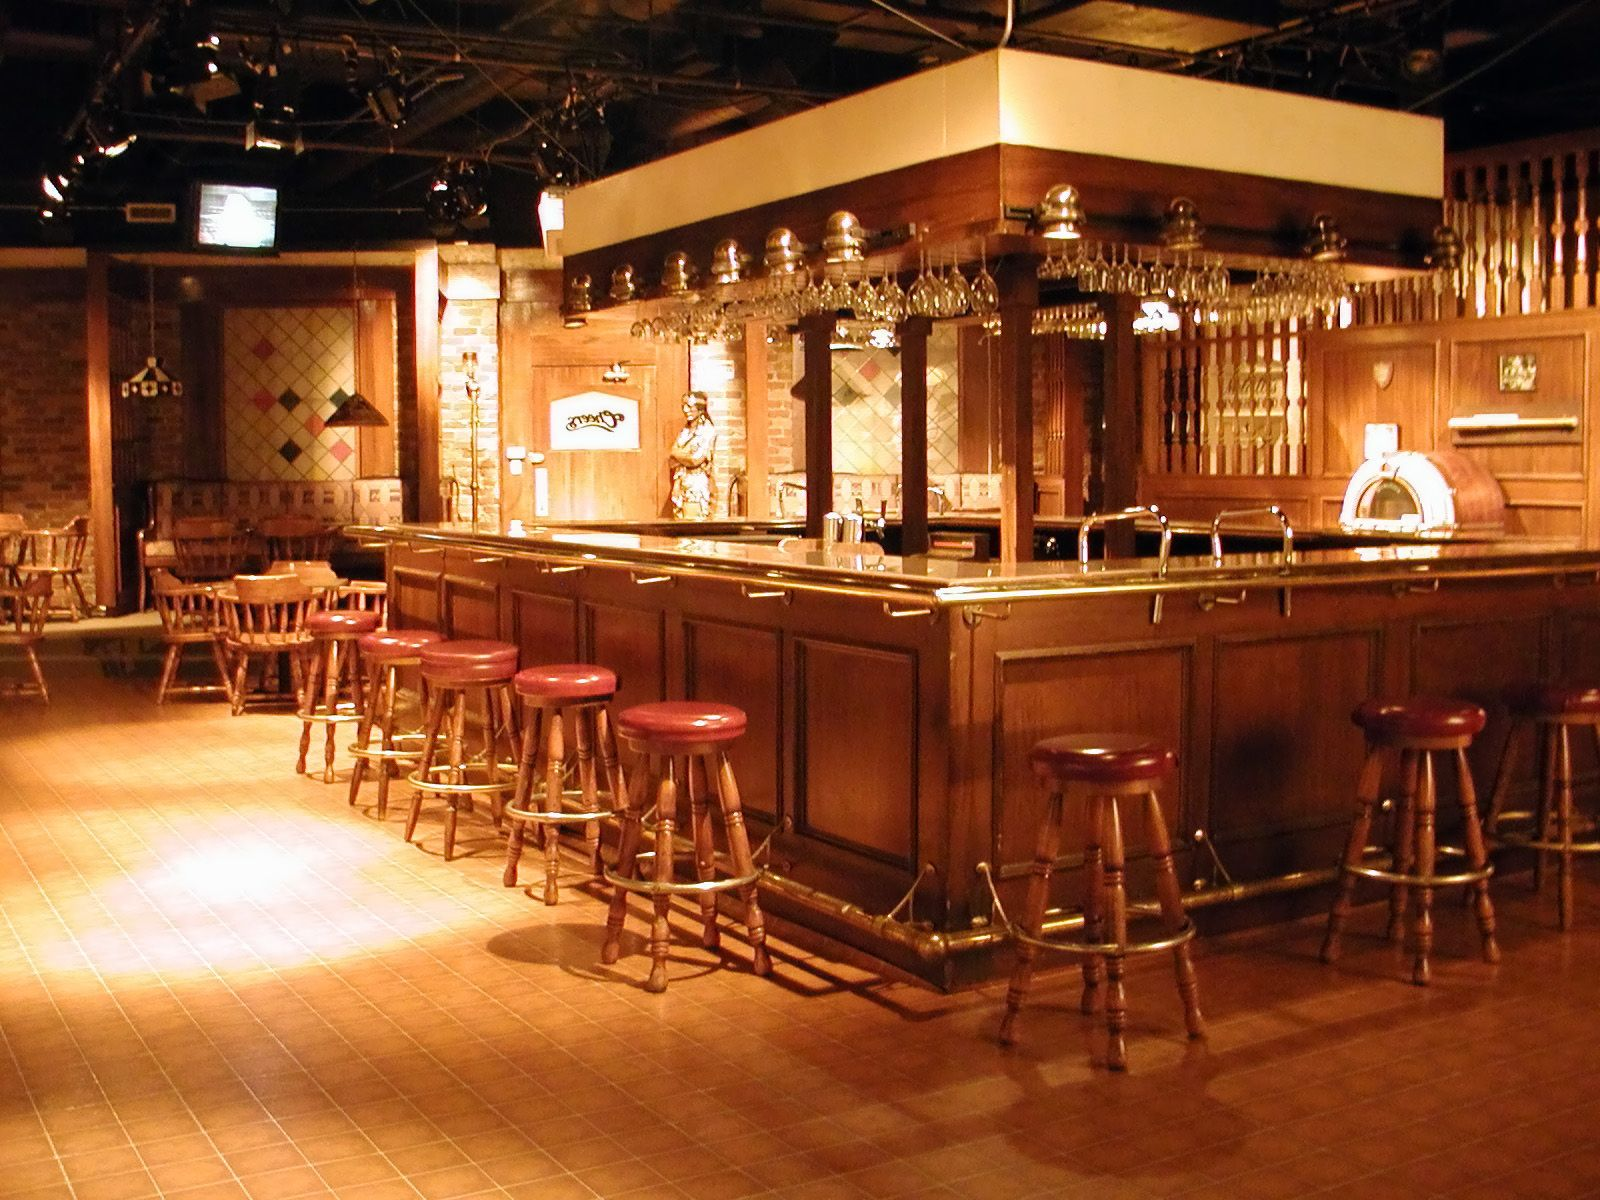 High Res Pic Of Cheers Set Basement Bar Pinterest Cheer And - The basement tv show